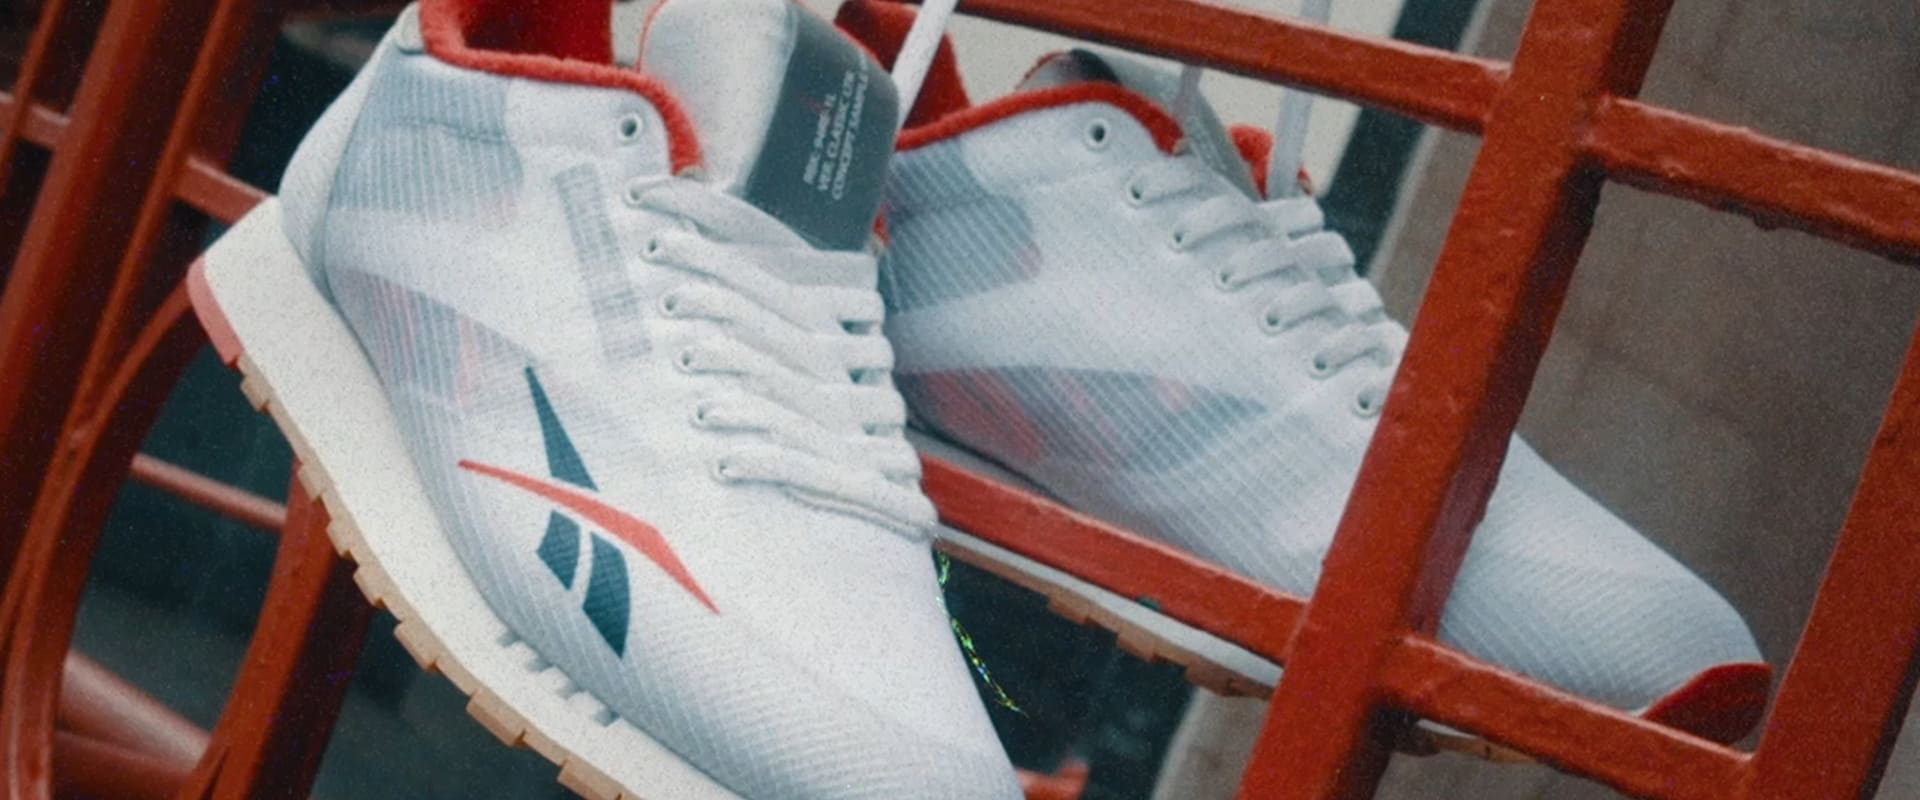 Alter The Icons – Learn More | Reebok US